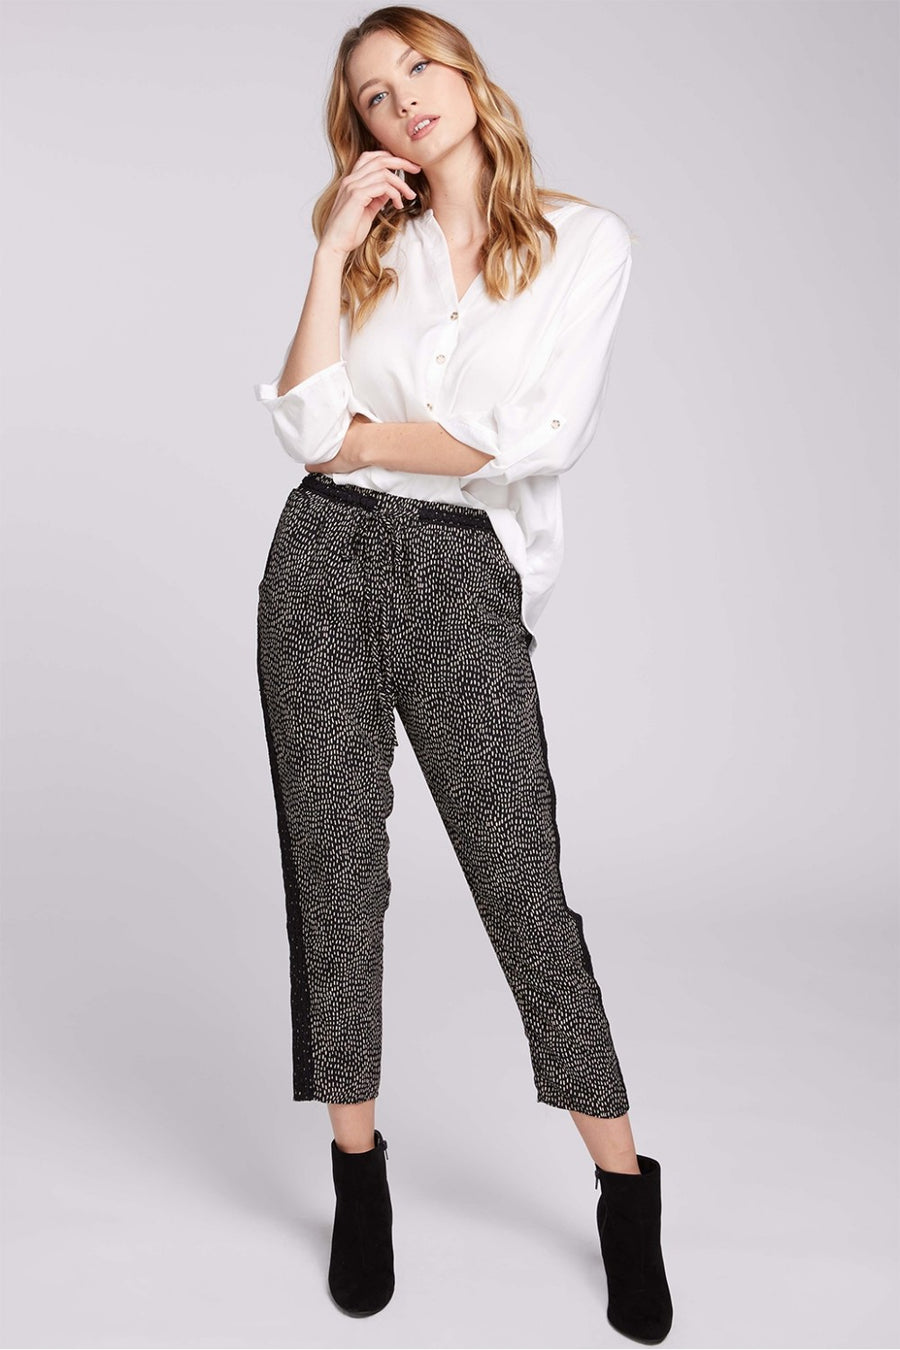 The Office Pants